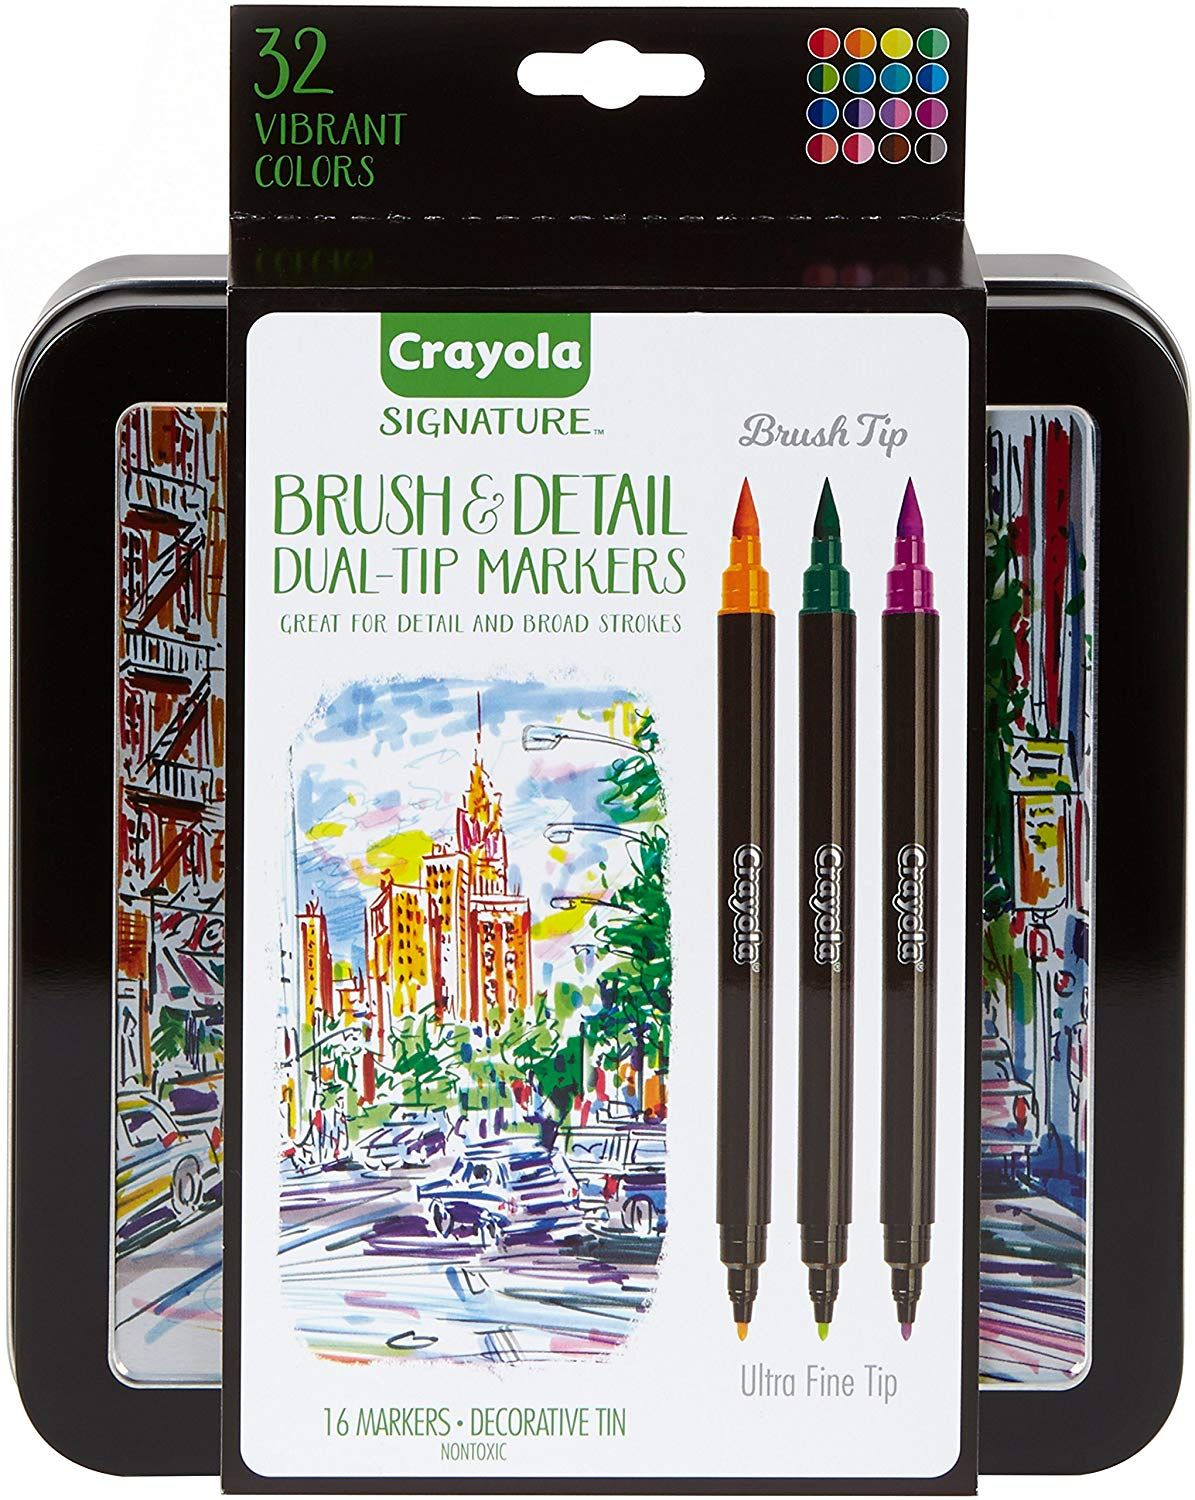 Brush /& Fine Tip Markers 36 Color for Beginners Hand Lettering Journaling Note Taking and Coloring Book Dual Brush Calligraphy Pens Art Marker 18 Count